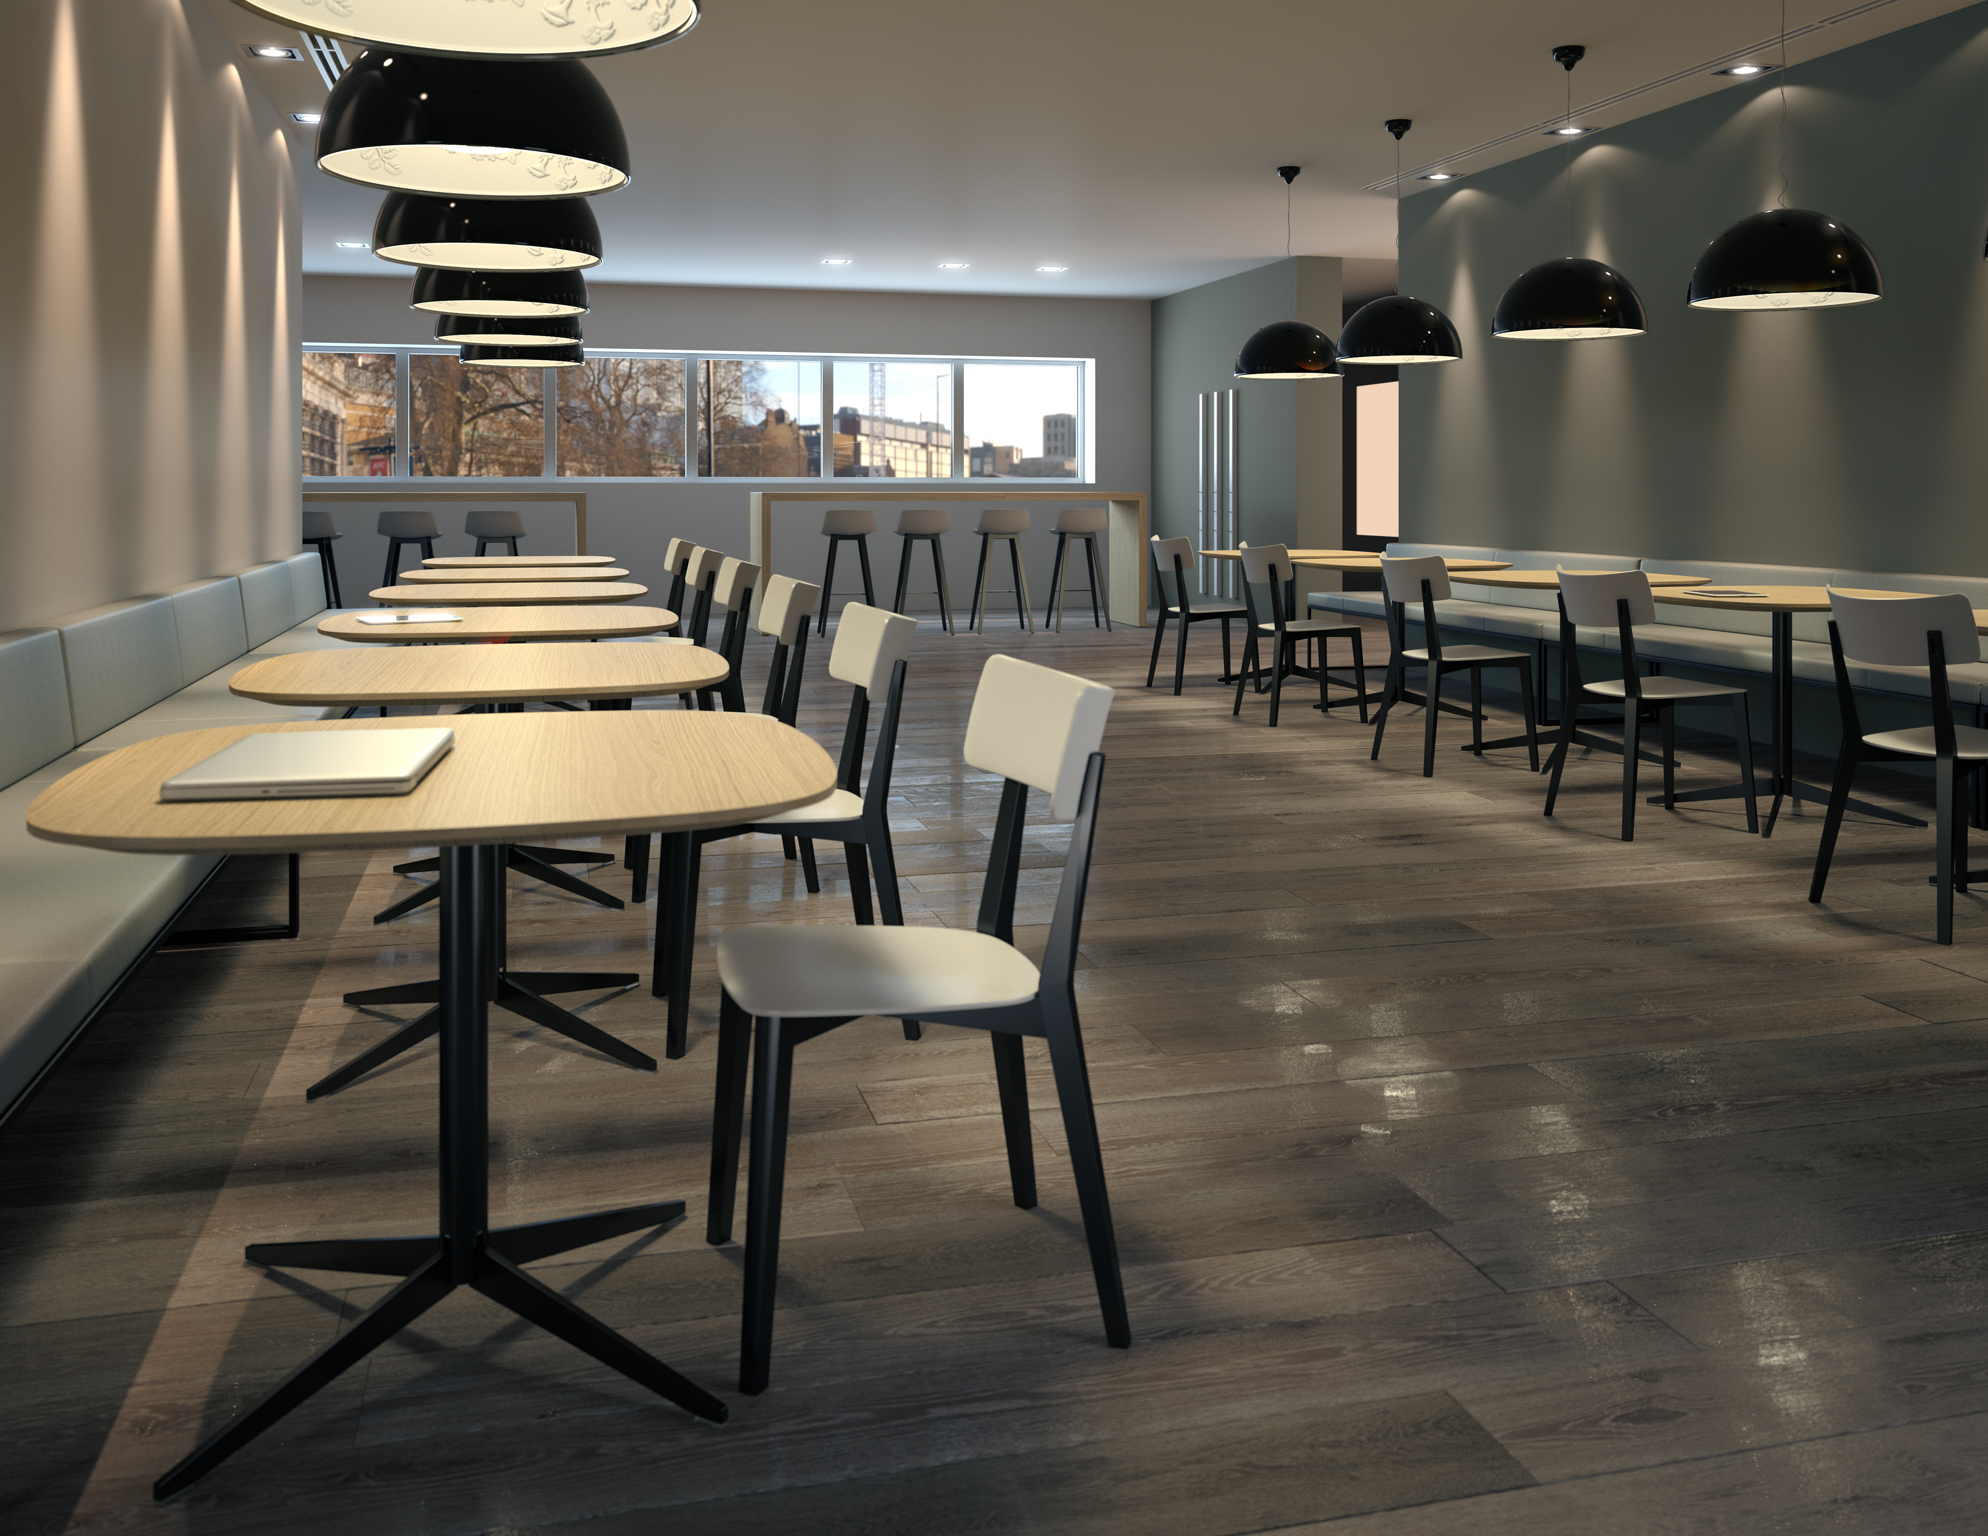 3d rendering of a corporate cafeteria